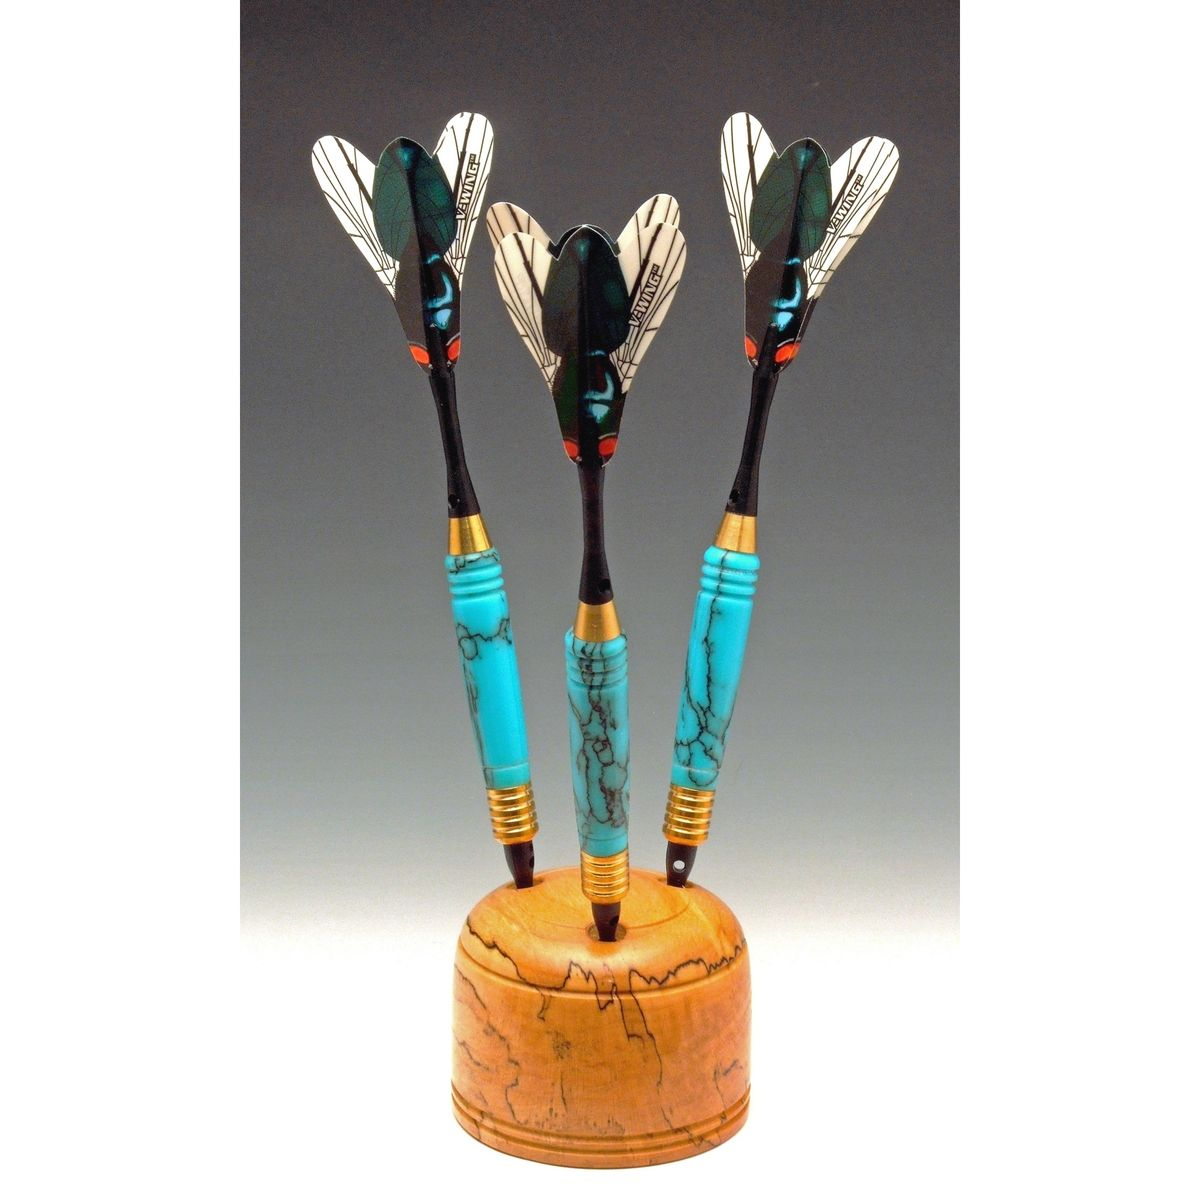 American Made Bedroom Furniture Hand Crafted Turquoise Dart Set By John M Russell